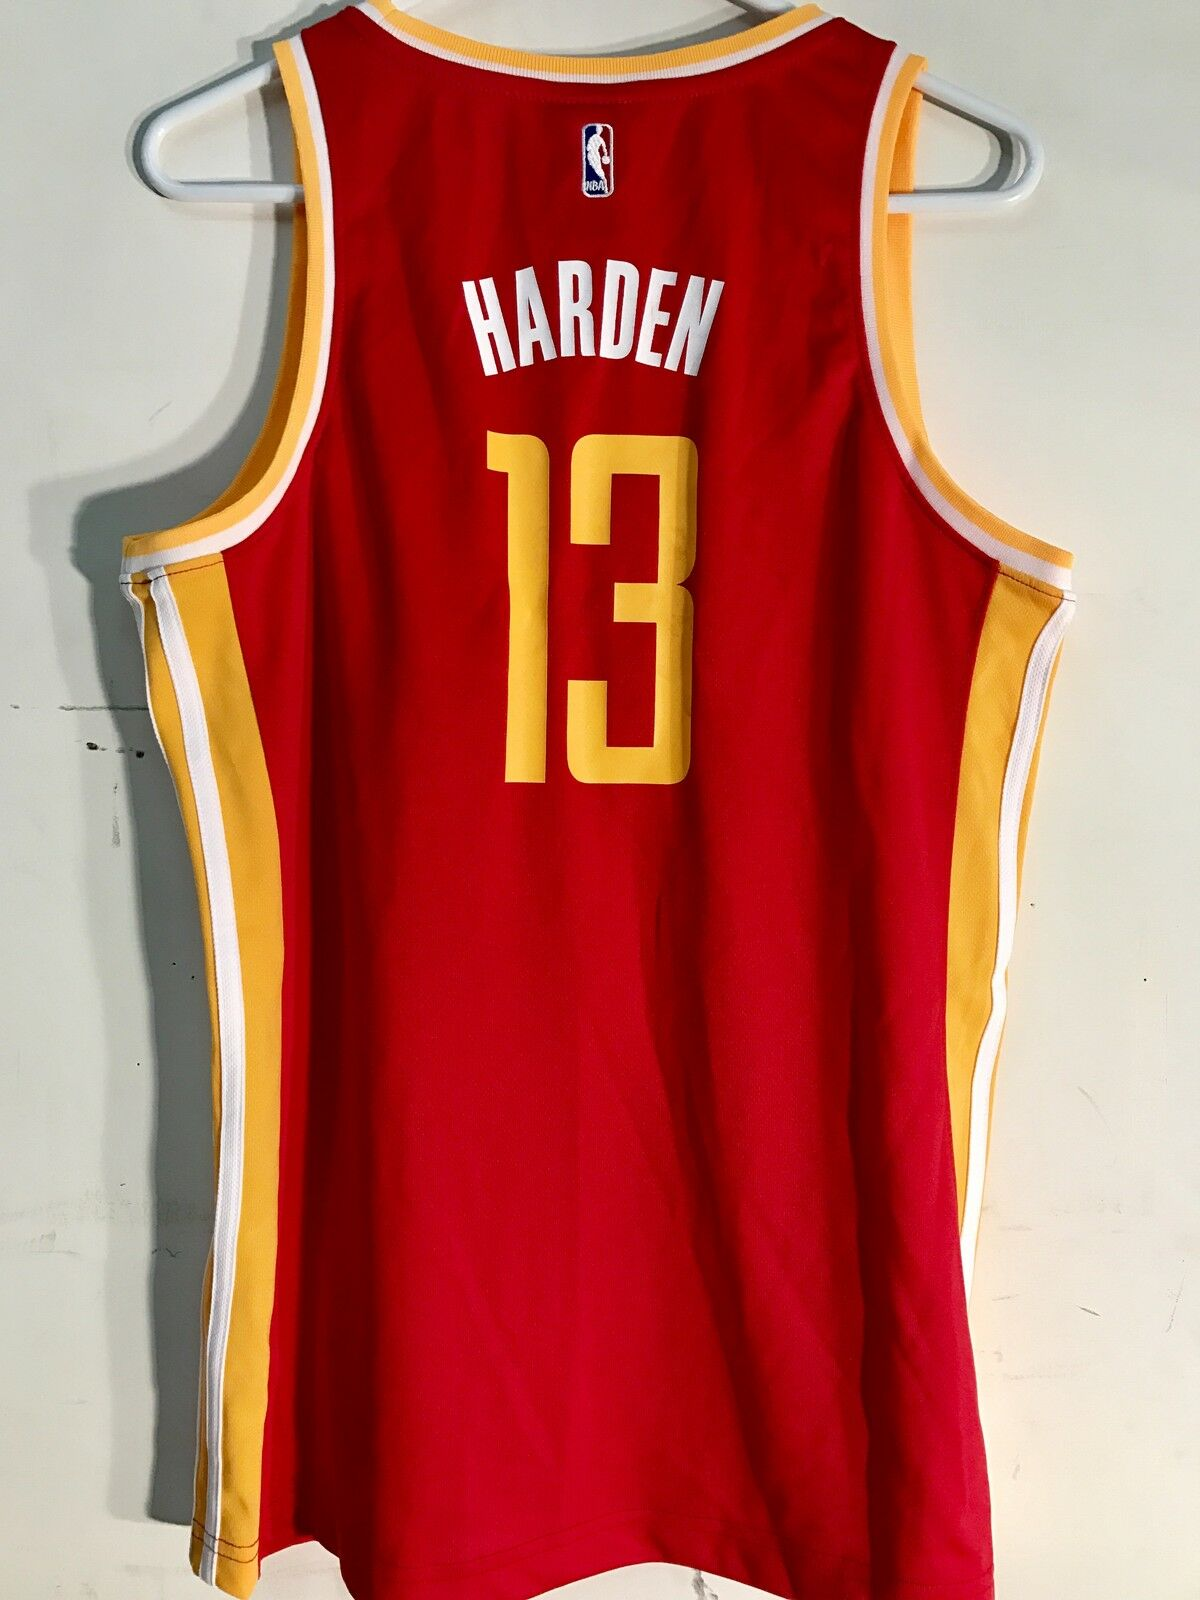 new product 77673 feca2 adidas Women's NBA Jersey Houston Rockets James Harden Red Alt Sz S